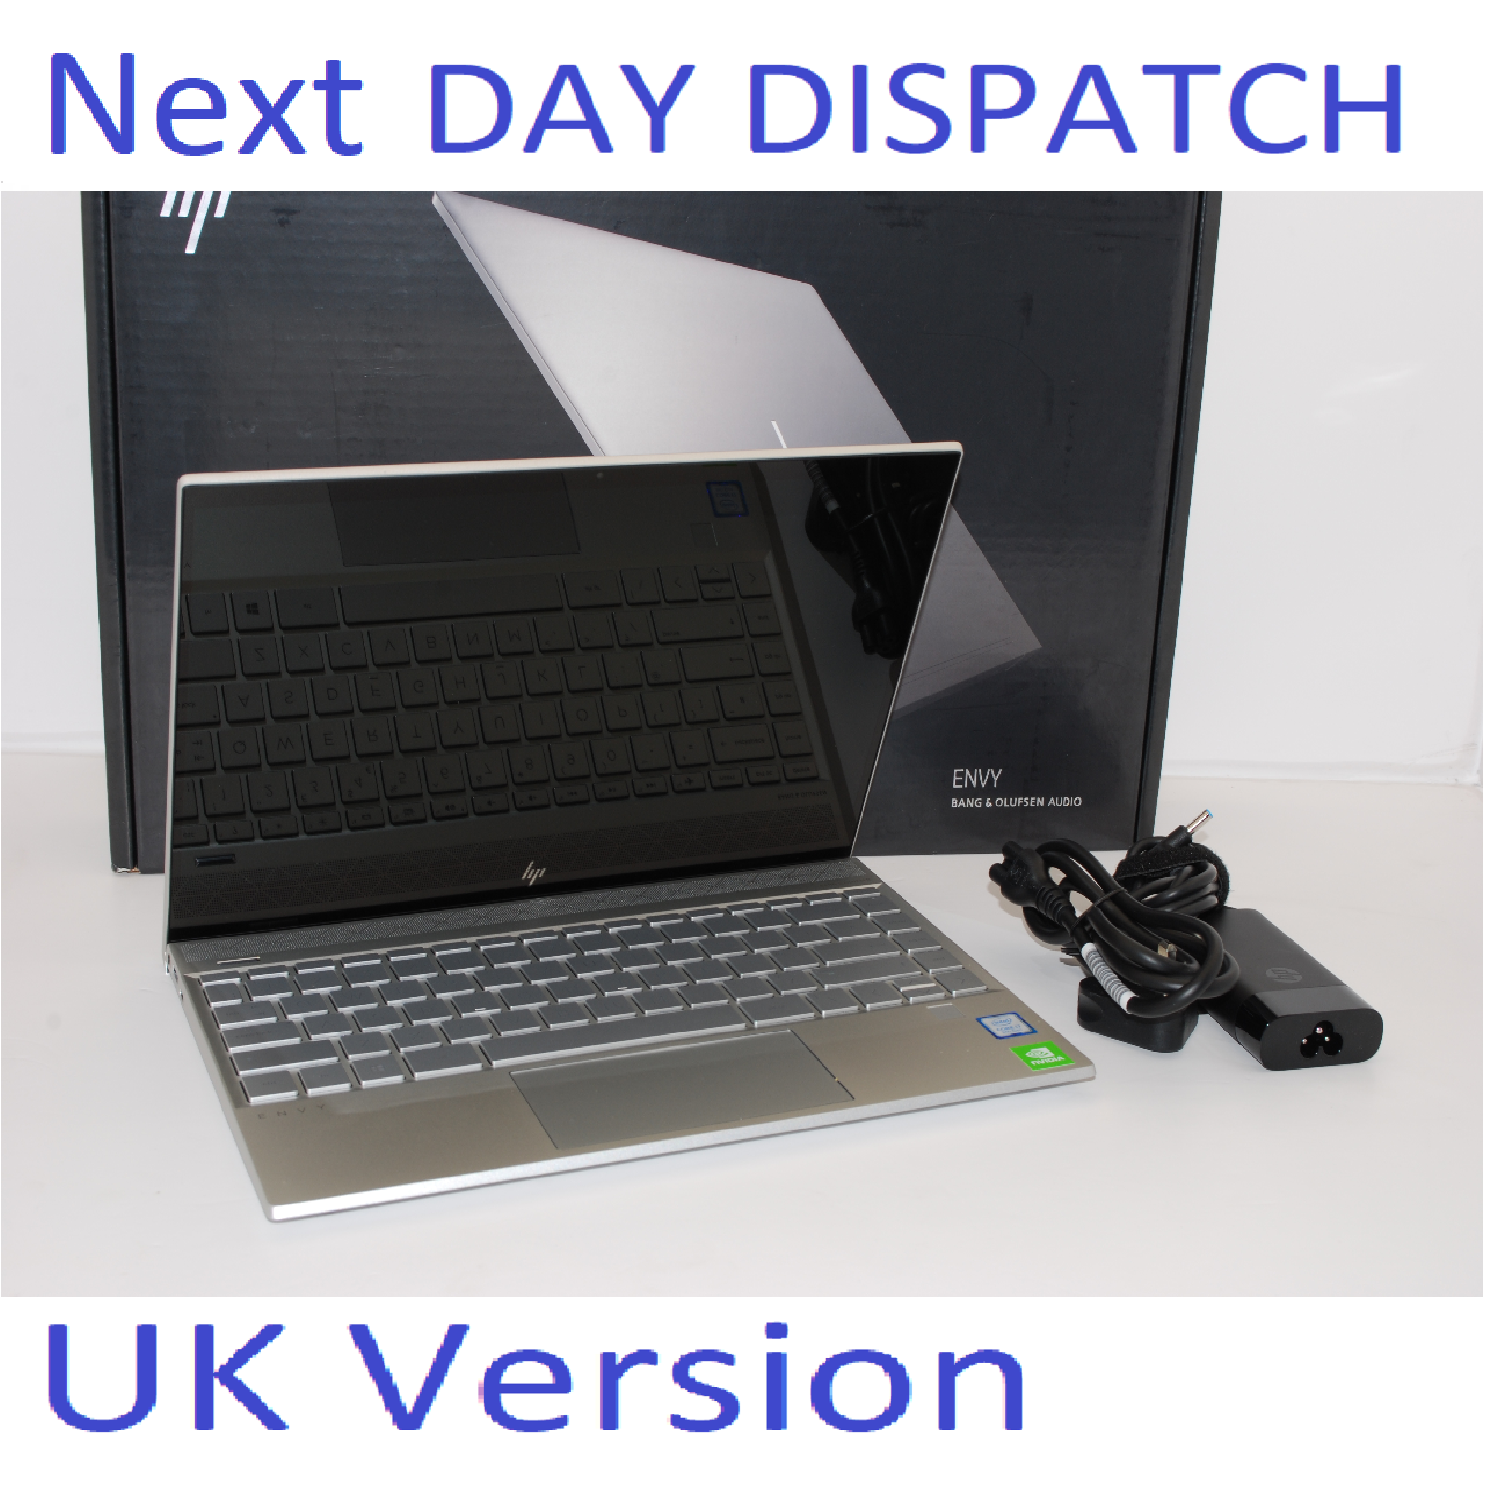 HP ENVY 13-AQ0502SA INTEL i7 8TH GEN 8565U 1.8GHz 8GB RAM 512GB SSD TOUCHSCREEN UK Stock